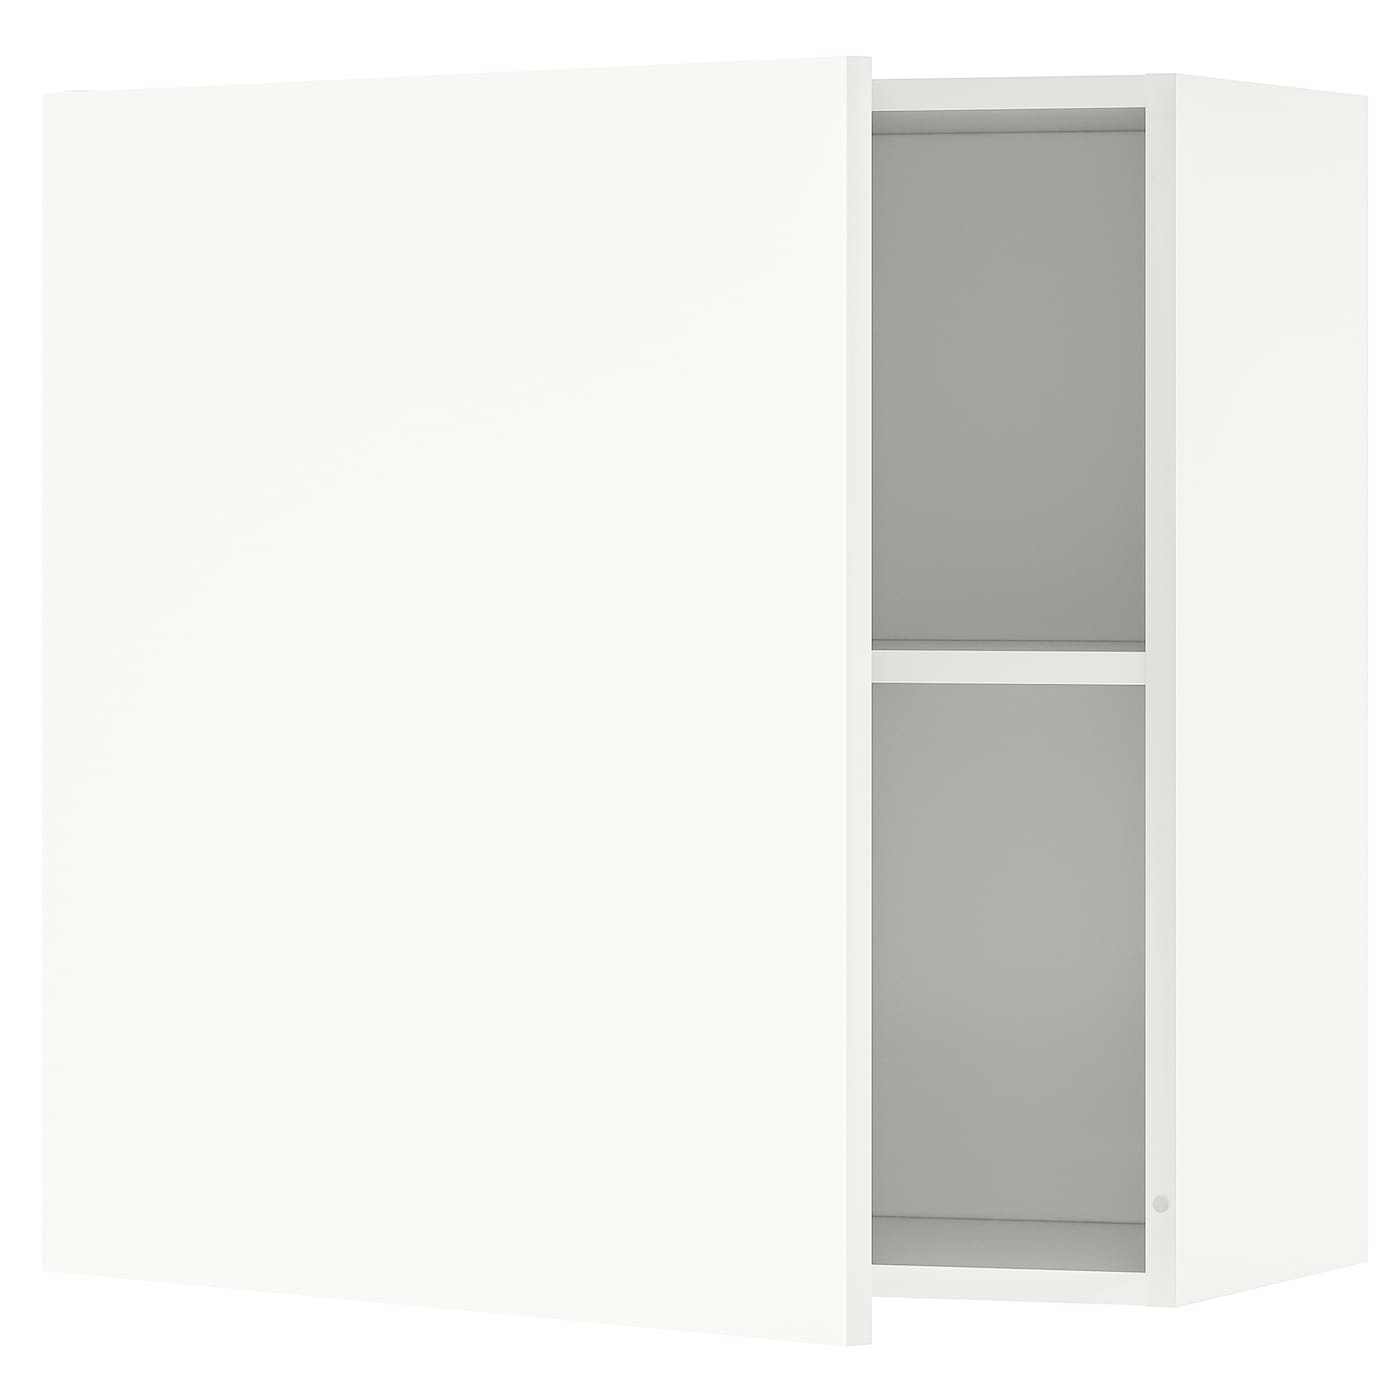 IKEA KNOXHULT wall cabinet with door The door can be mounted to open left or right.